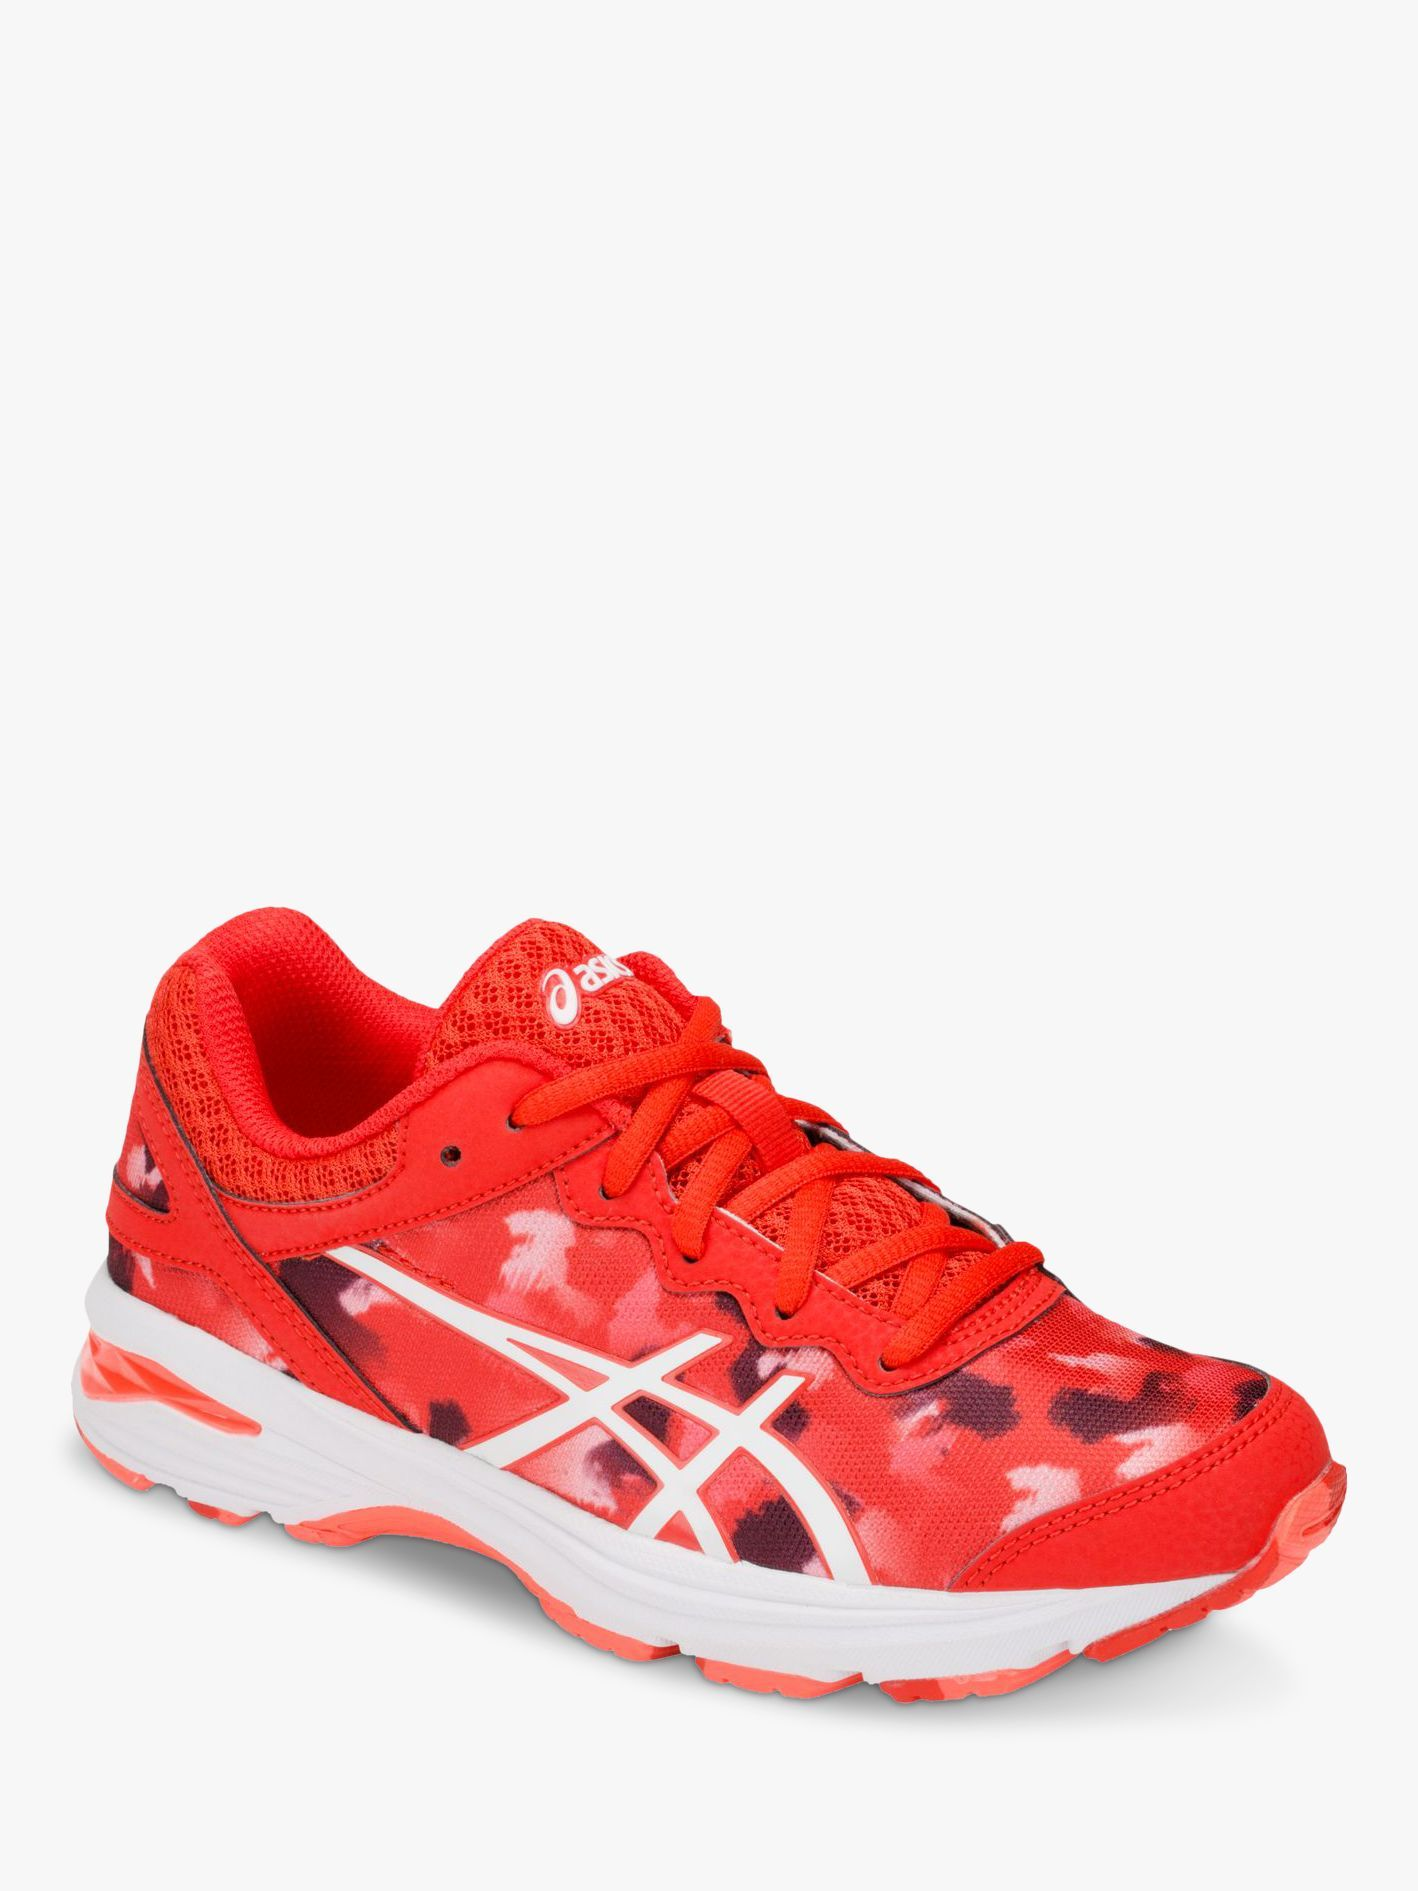 Asics Children S Gel Netburner Professional Gs Netball Shoes Fiery Red White Netball Fiery Red Professional Shoes